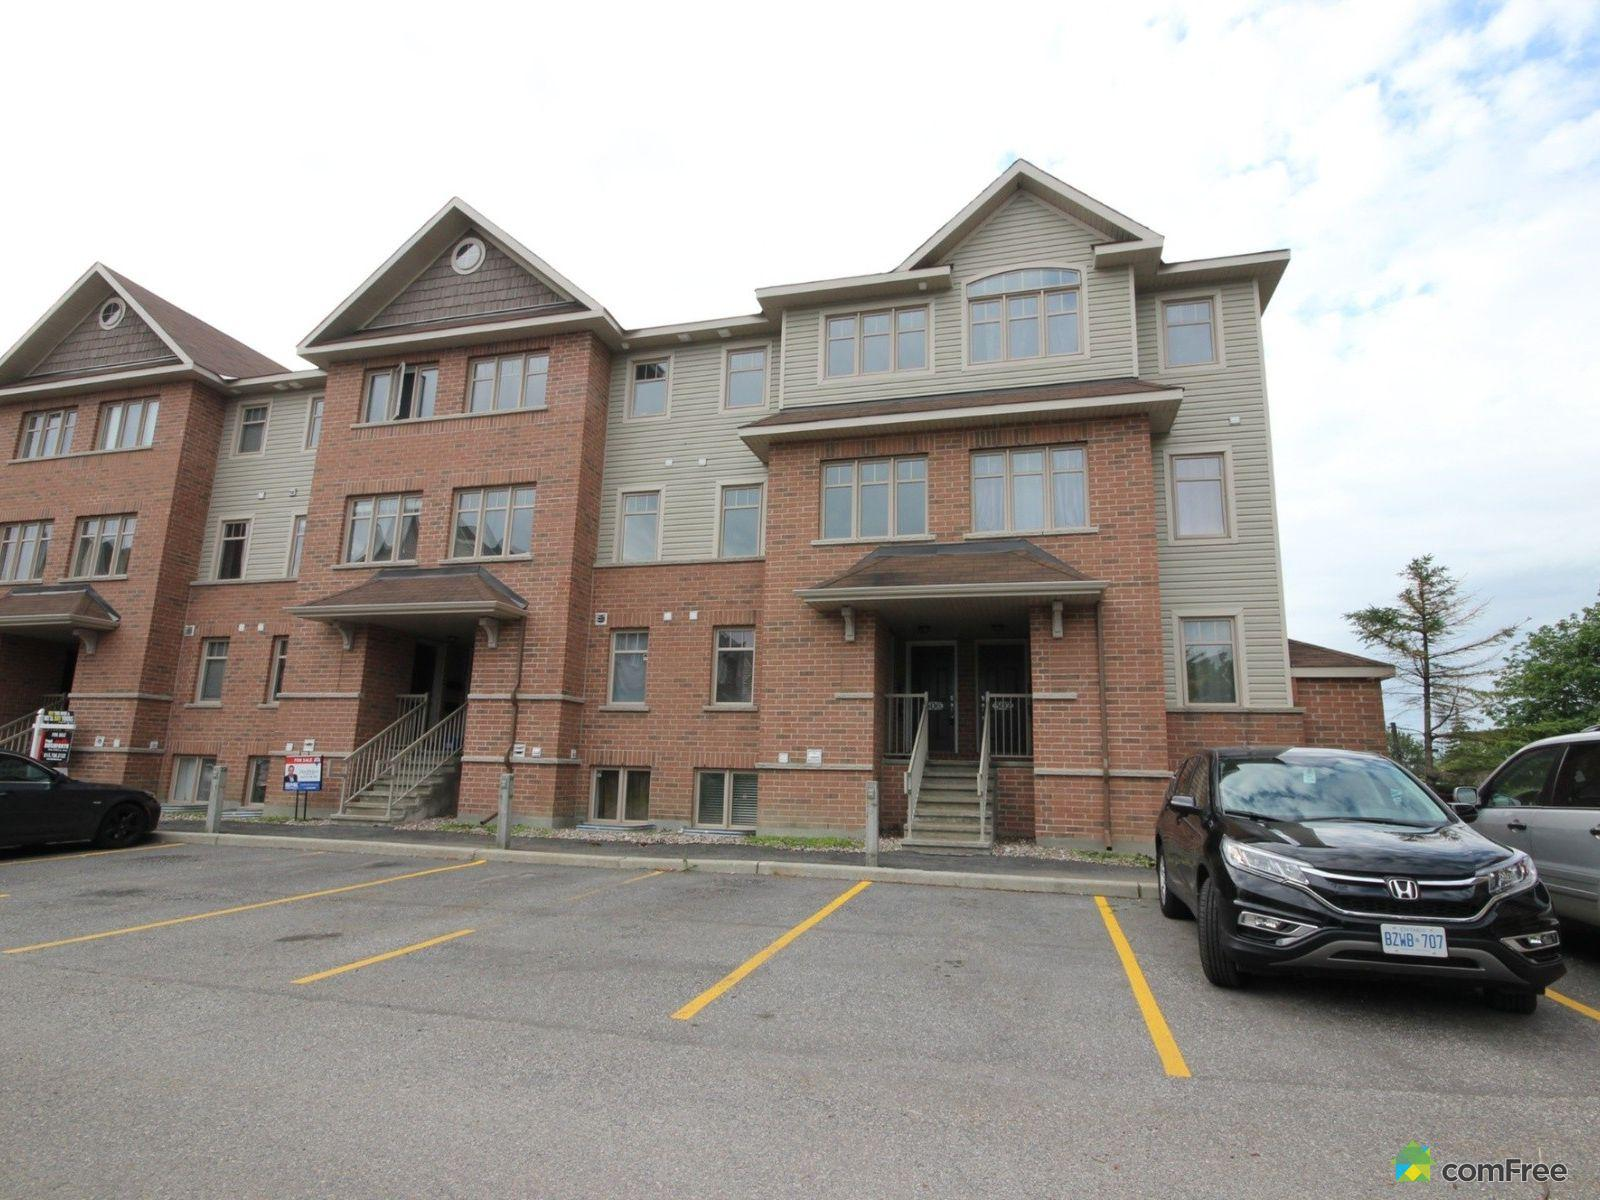 condo-for-sale-ottawa-ontario-1600-7635133